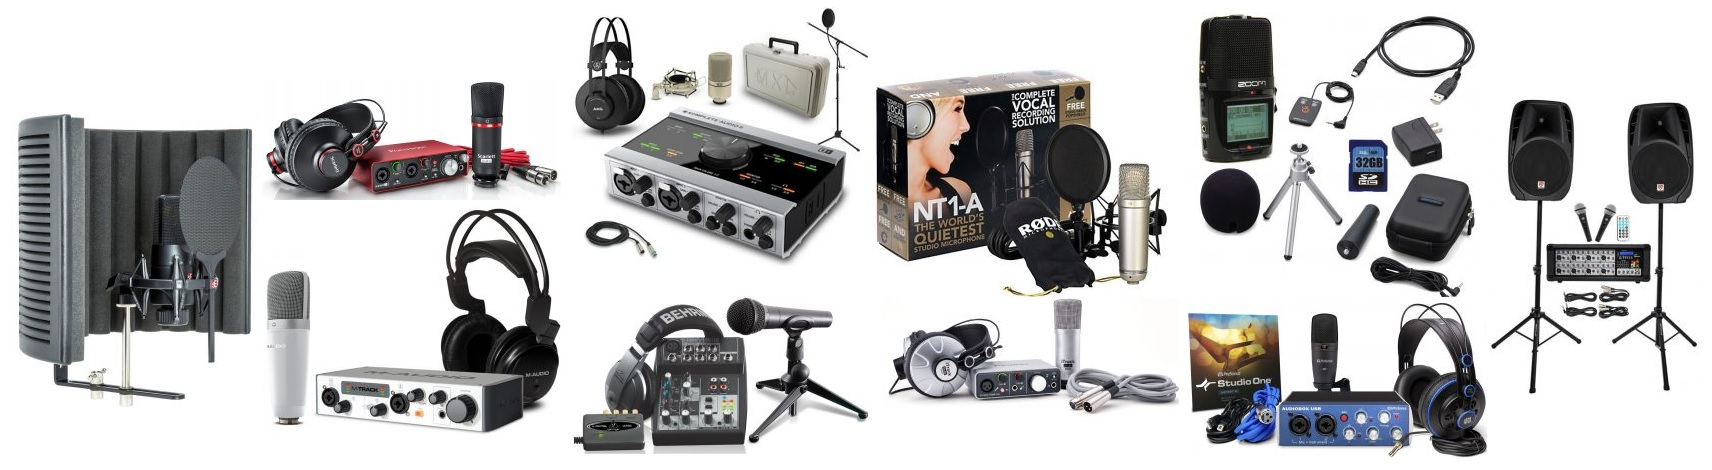 The Best Home Recording Studio Bundles and Packages - The